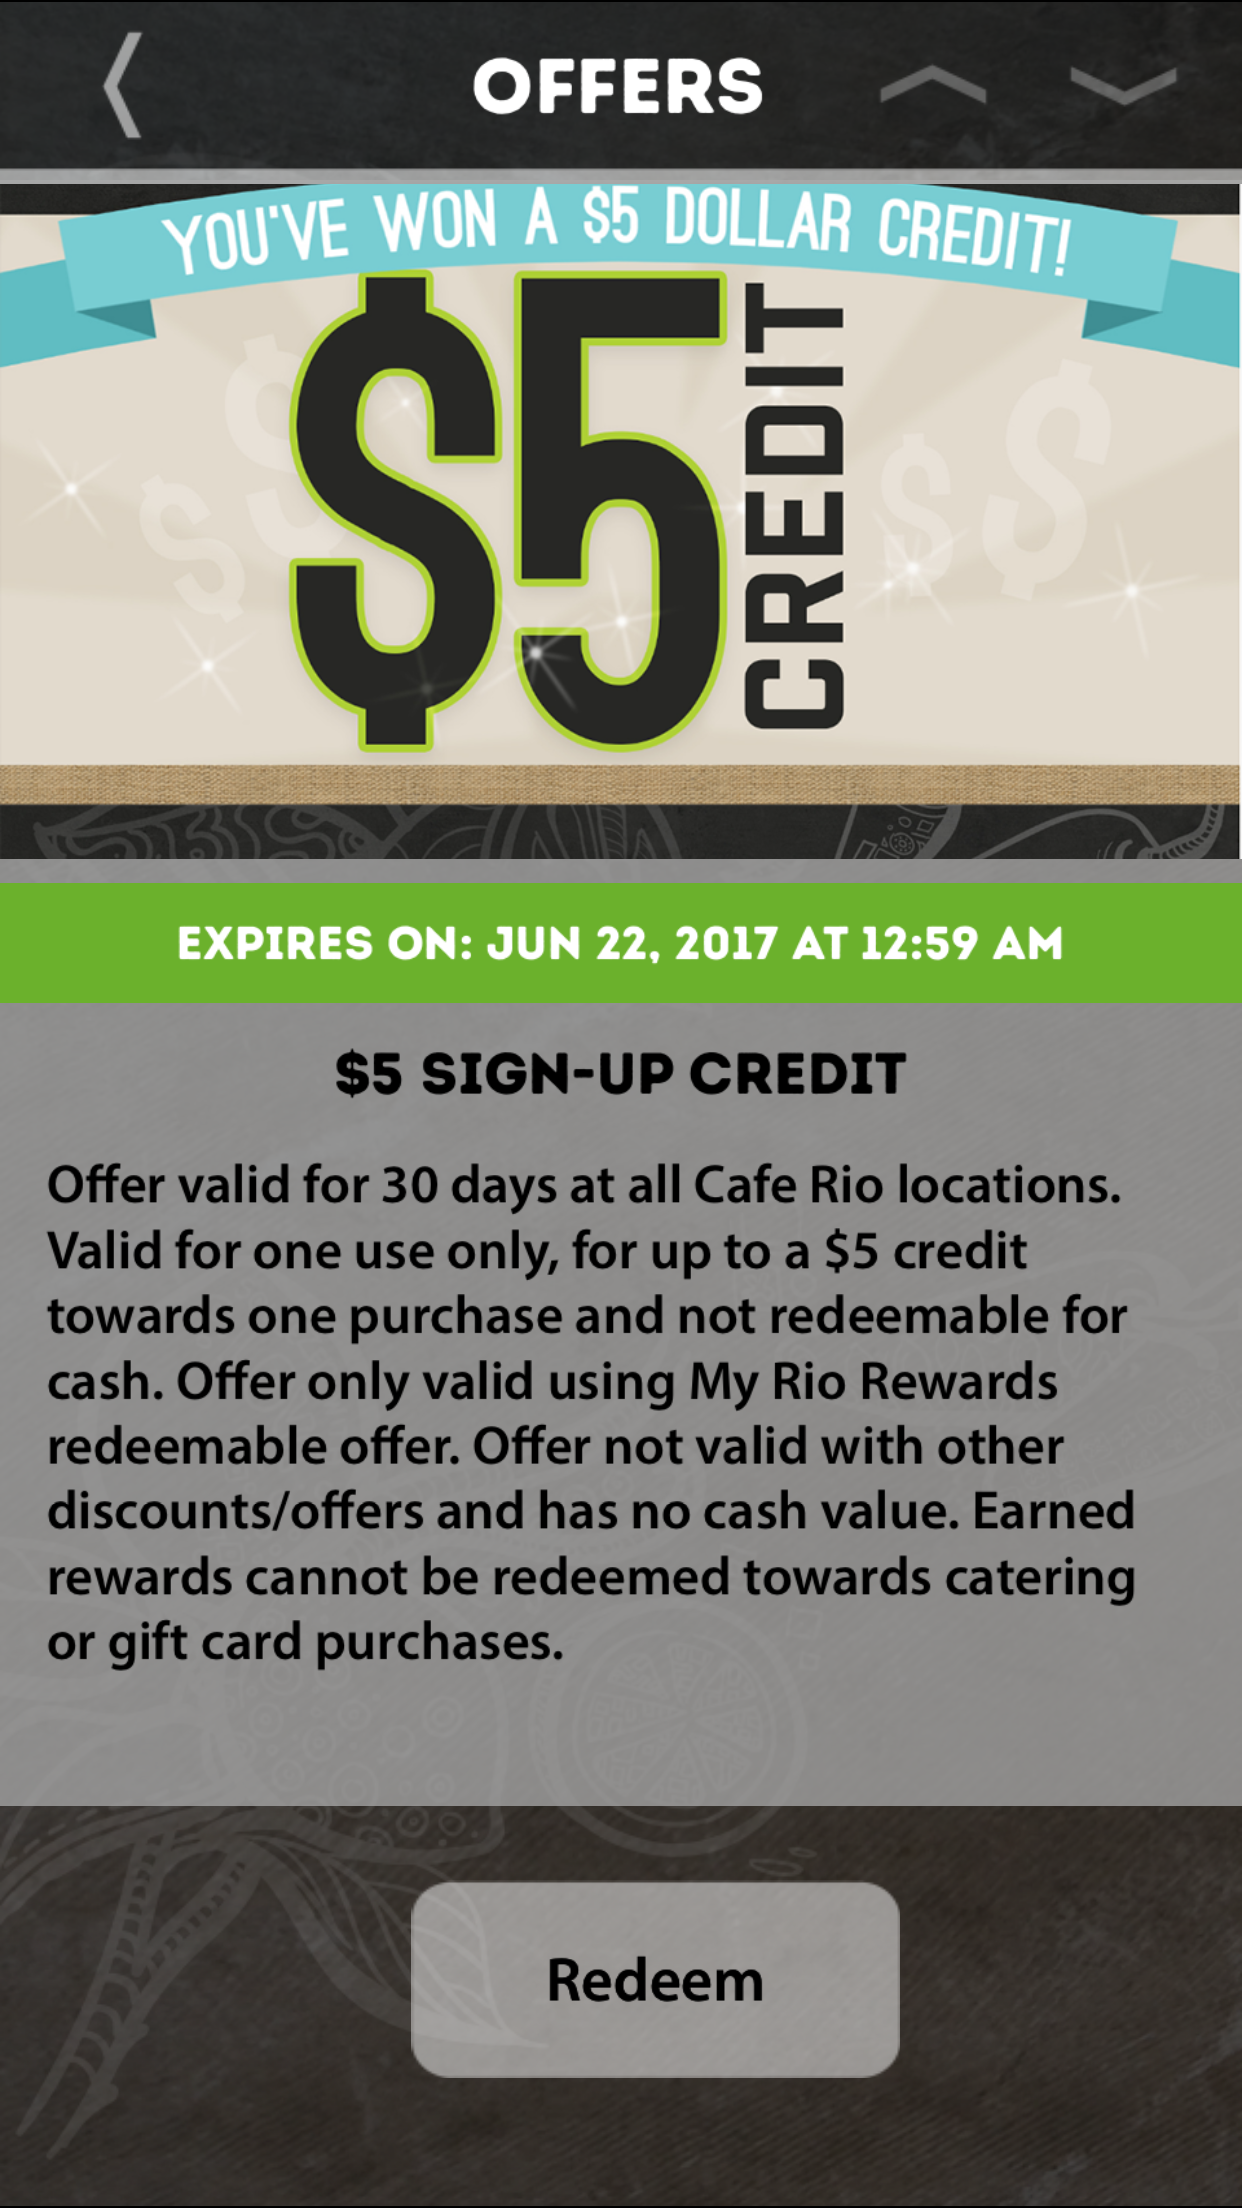 FREE $5 Credit to spend at Cafe Rio